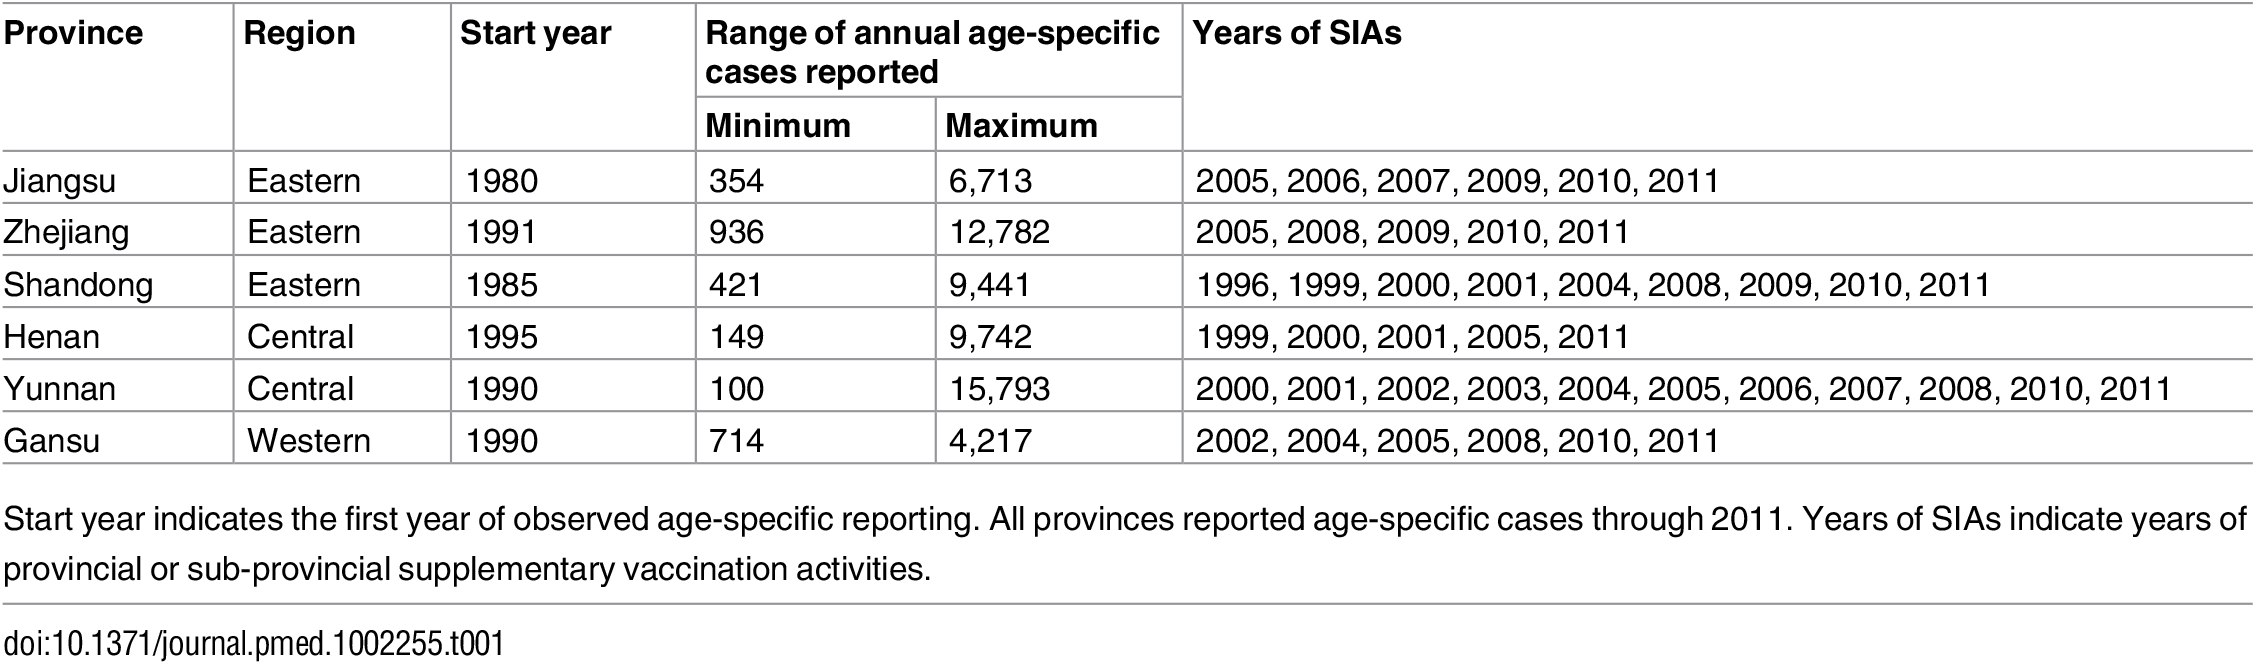 Description of age-specific case reporting in six Chinese provinces.